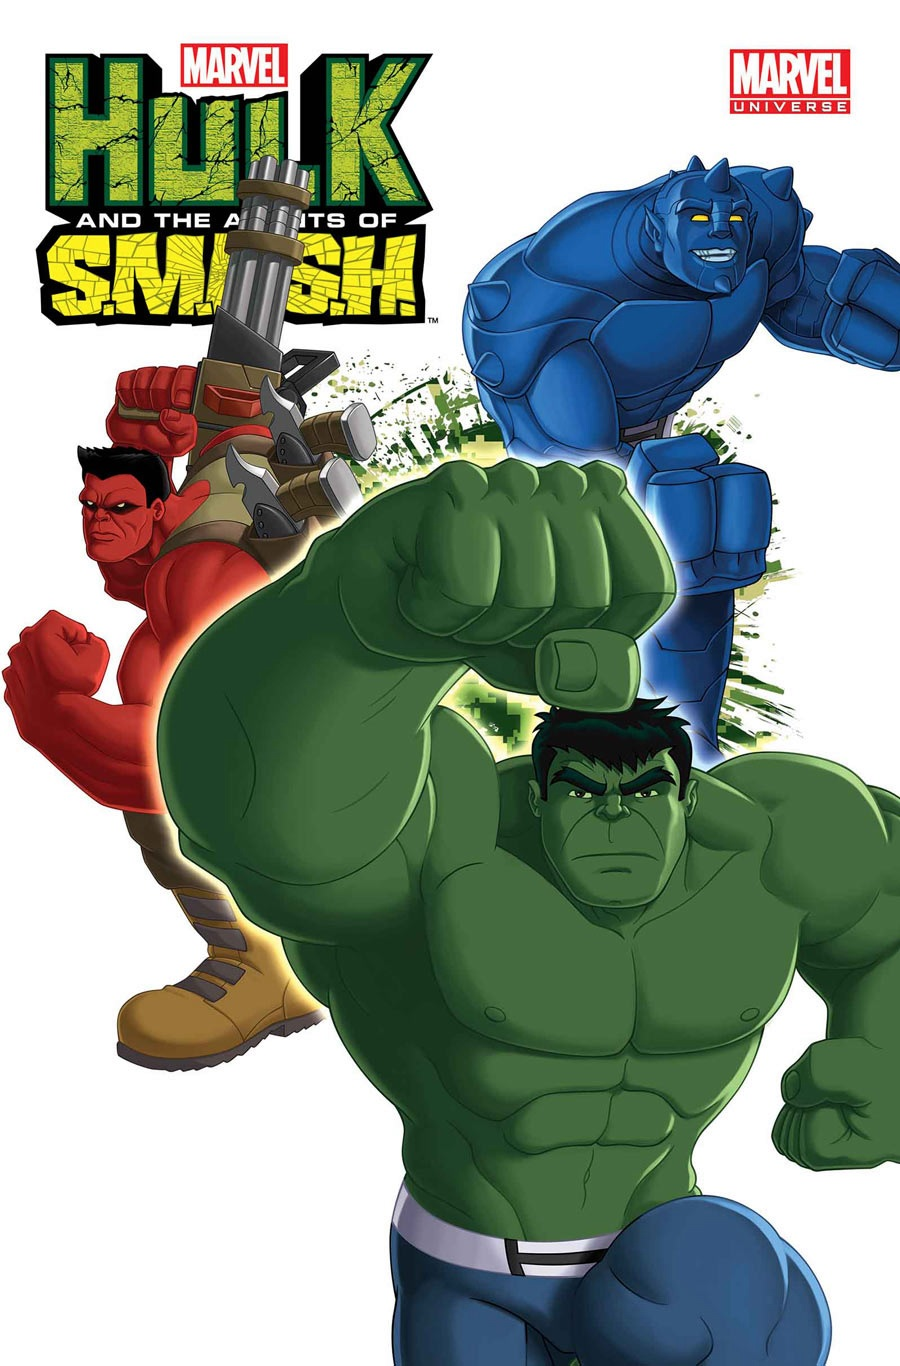 Hulk and the agents of smash season 2 cover دانلود فصل دوم انیمیشن Hulk and the Agents of S.M.A.S.H Season 2 2014